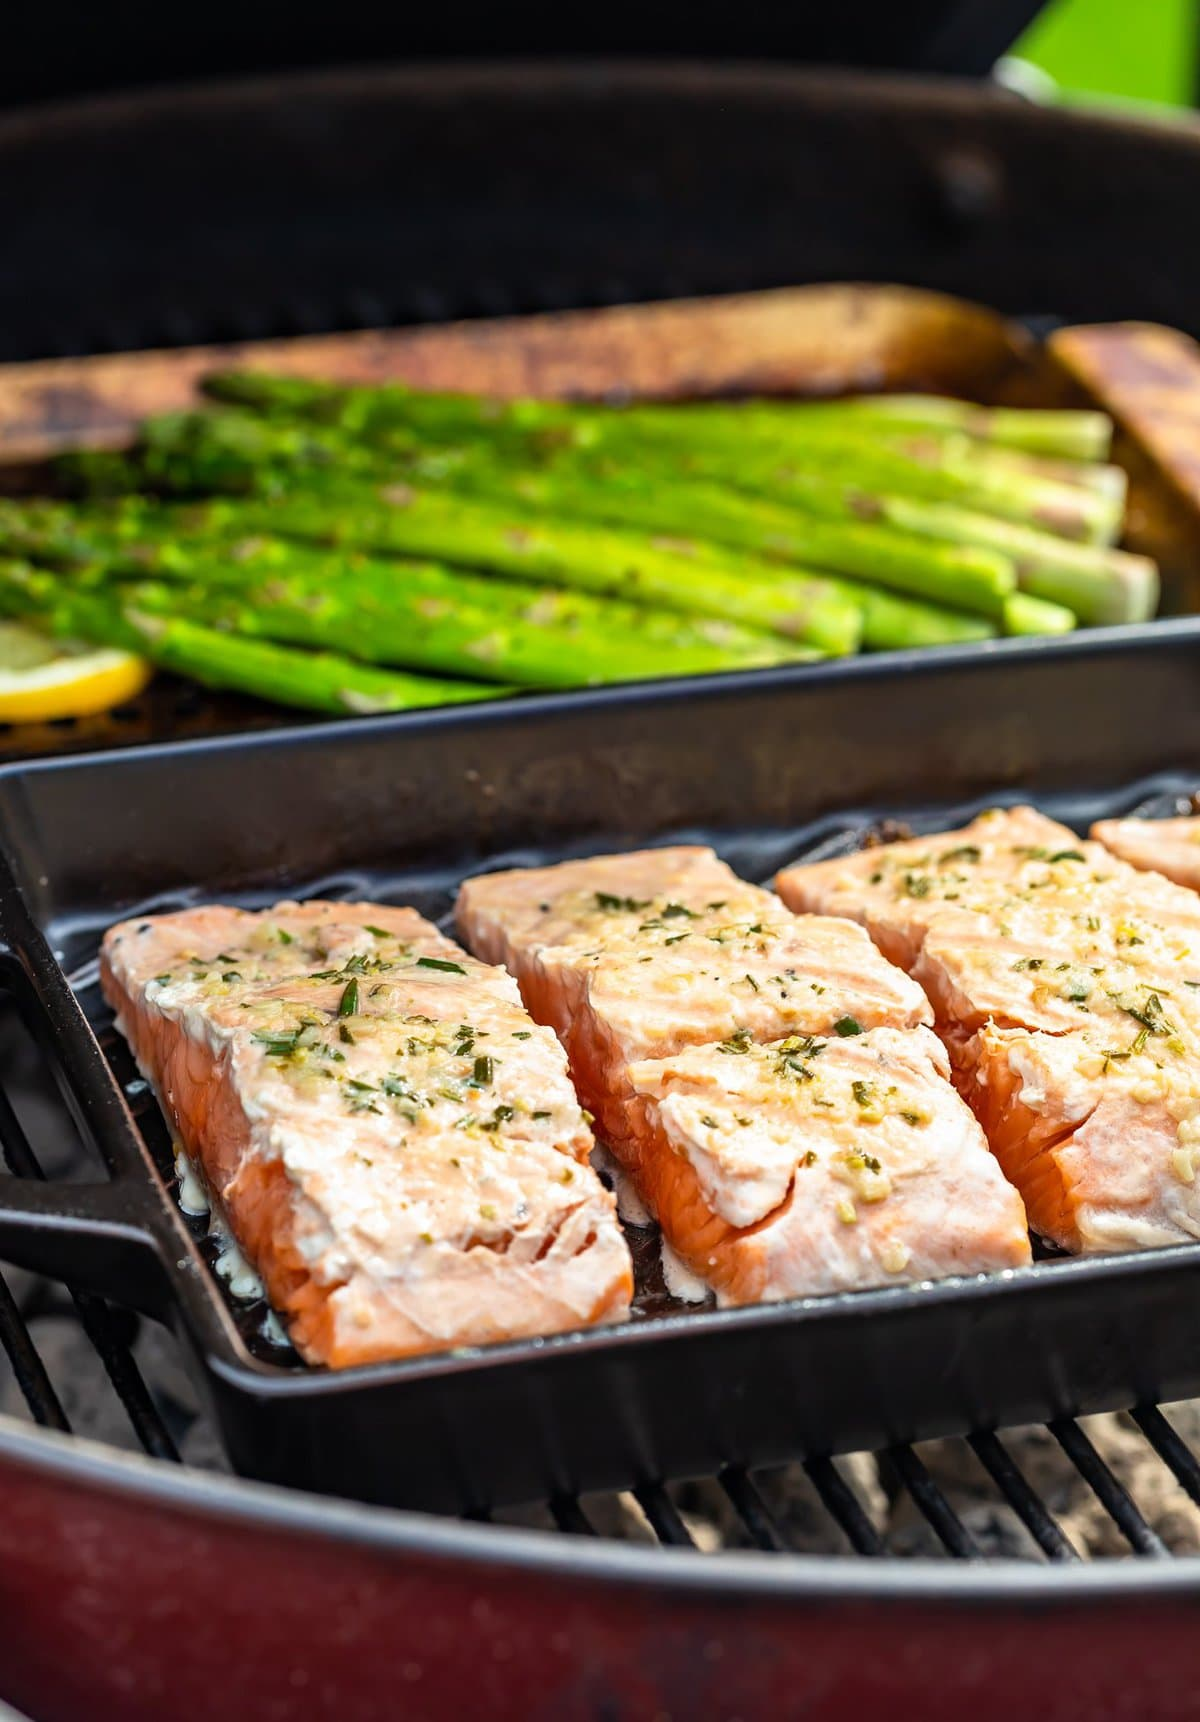 salmon fillets and asparagus in grill pans